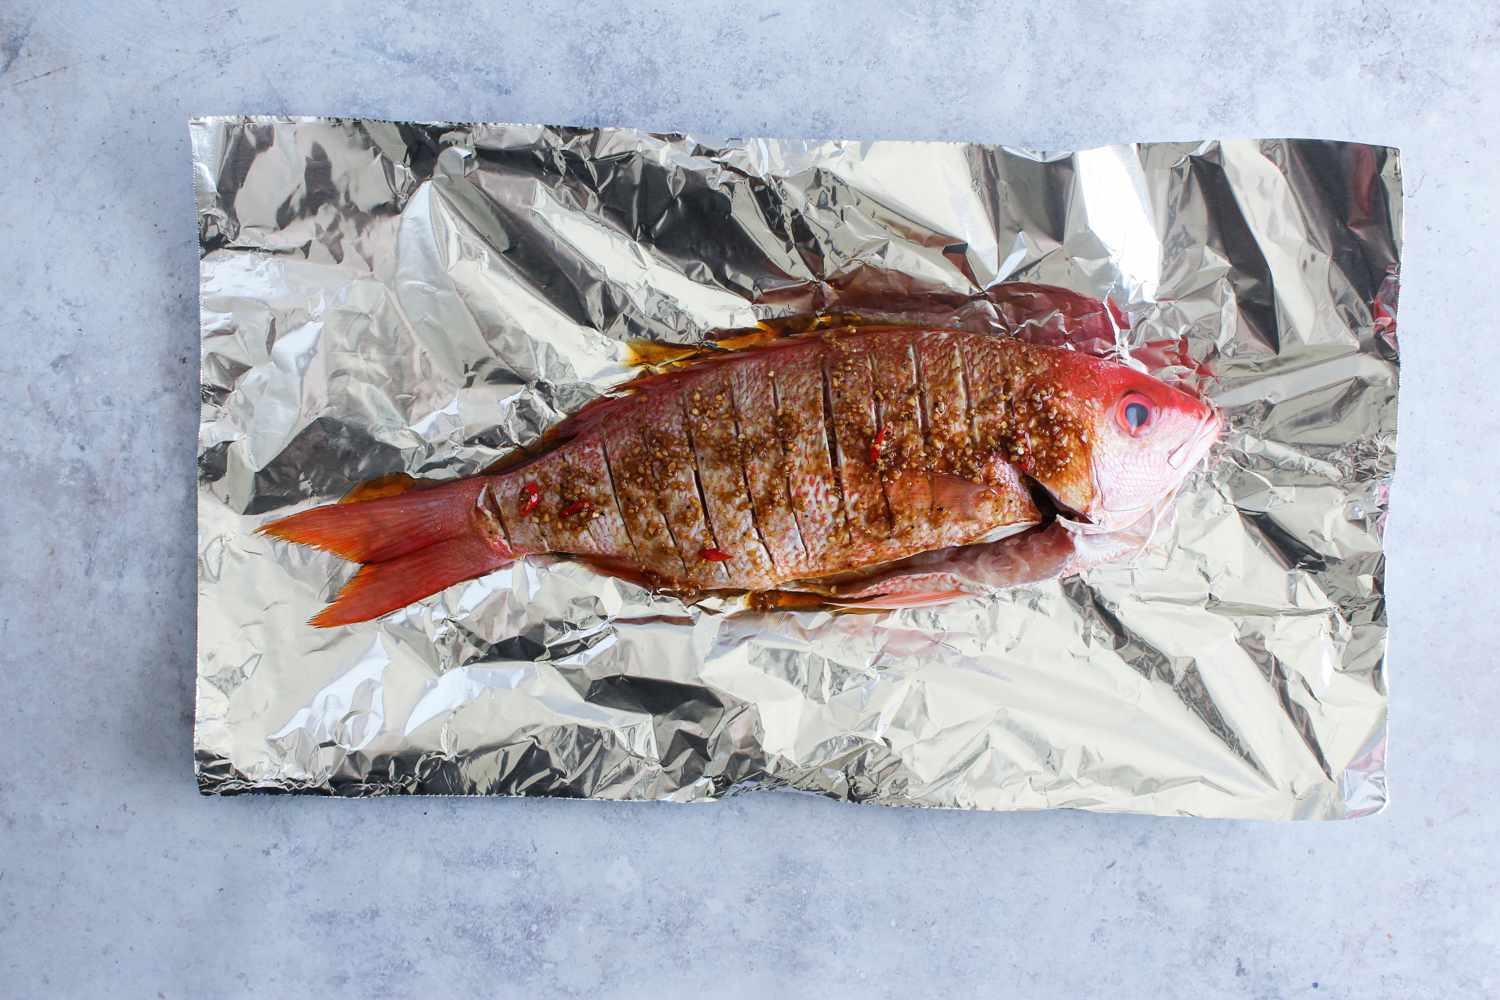 Scored whole fish and sauce on foil